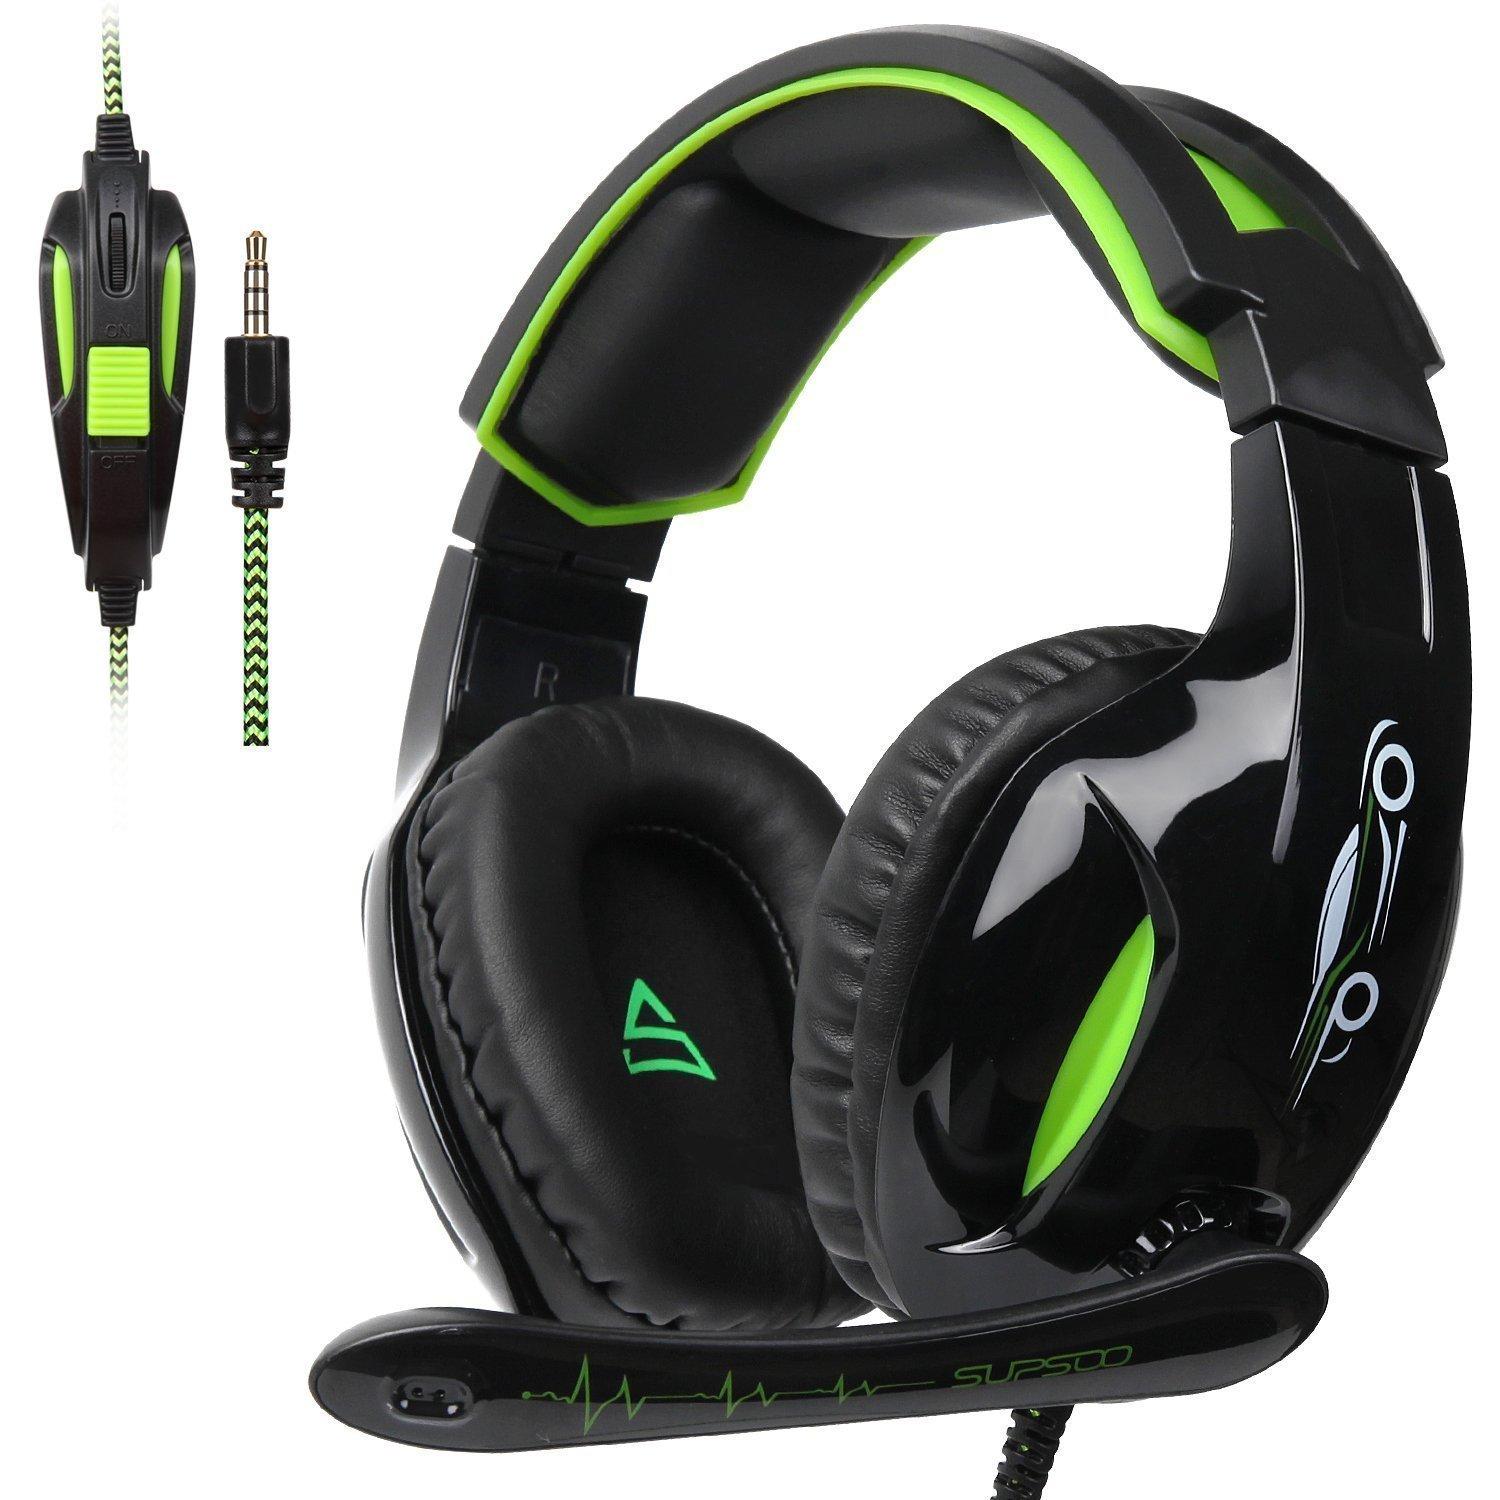 57f662a1ca4 [SUPSOO G813 New Xbox one Gaming Headset ]3.5mm Stereo Wired Over Ear  Gaming Headset with Mic&Noise Cancelling & Volume Control for New Xbox One  / PC / Mac/ ...